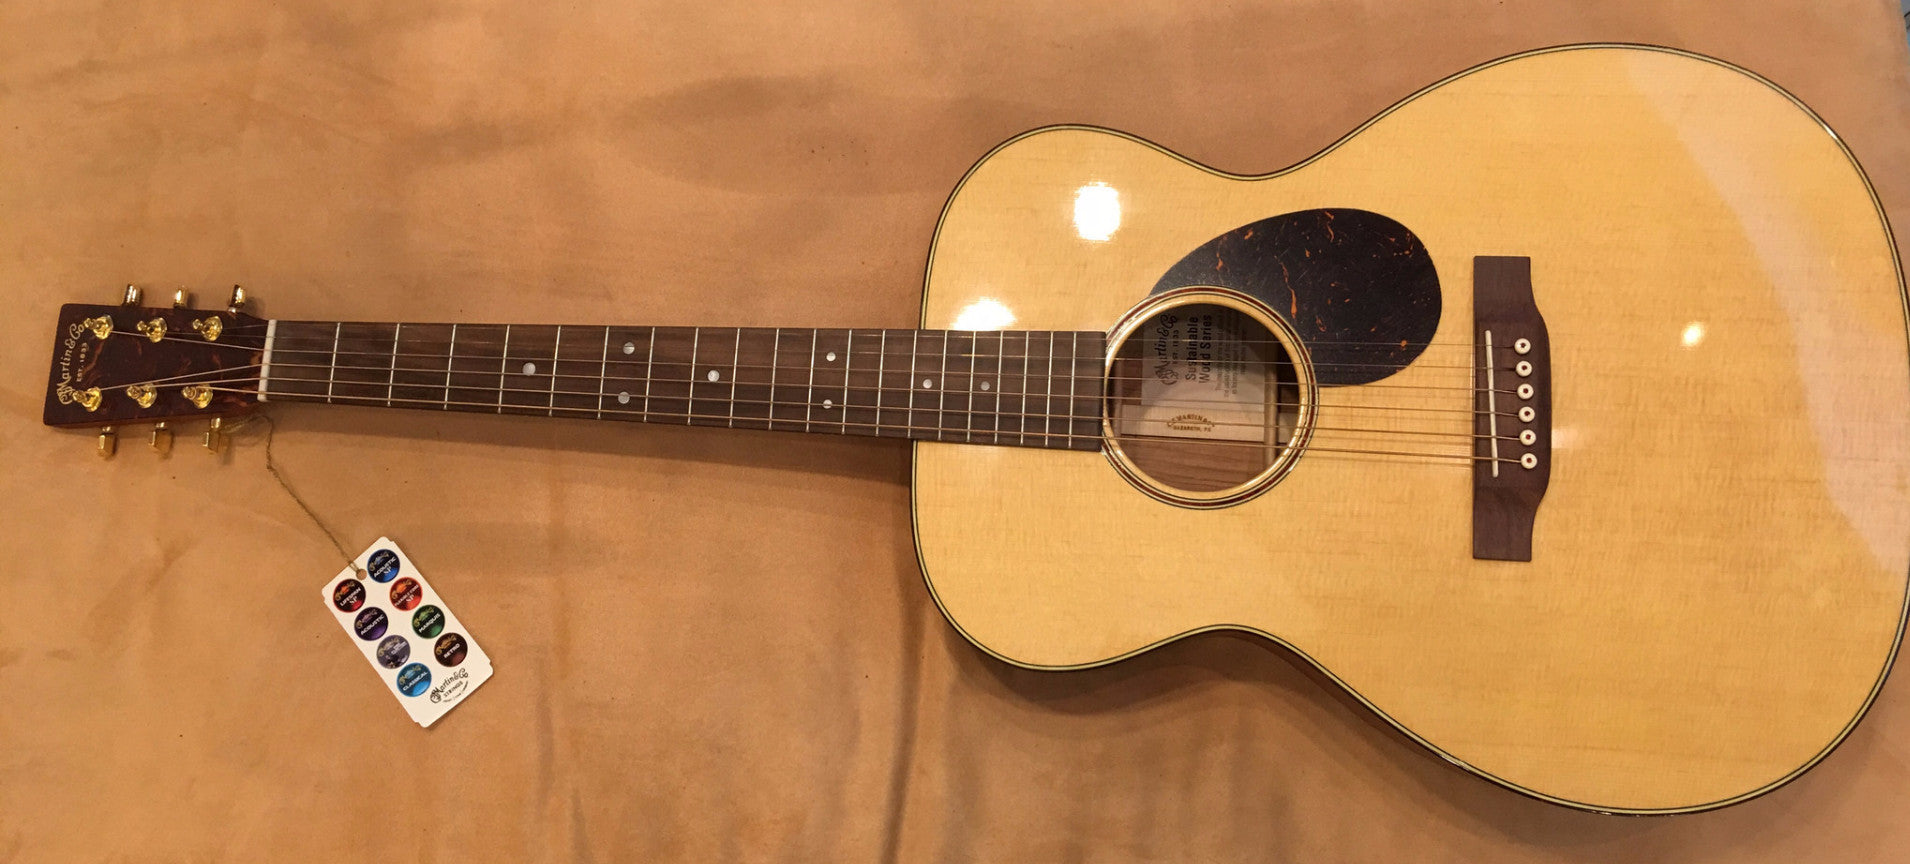 Martin SWOMGT Sustainable Wood - Natural - HIENDGUITAR   HIENDGUITAR.COM GUITAR